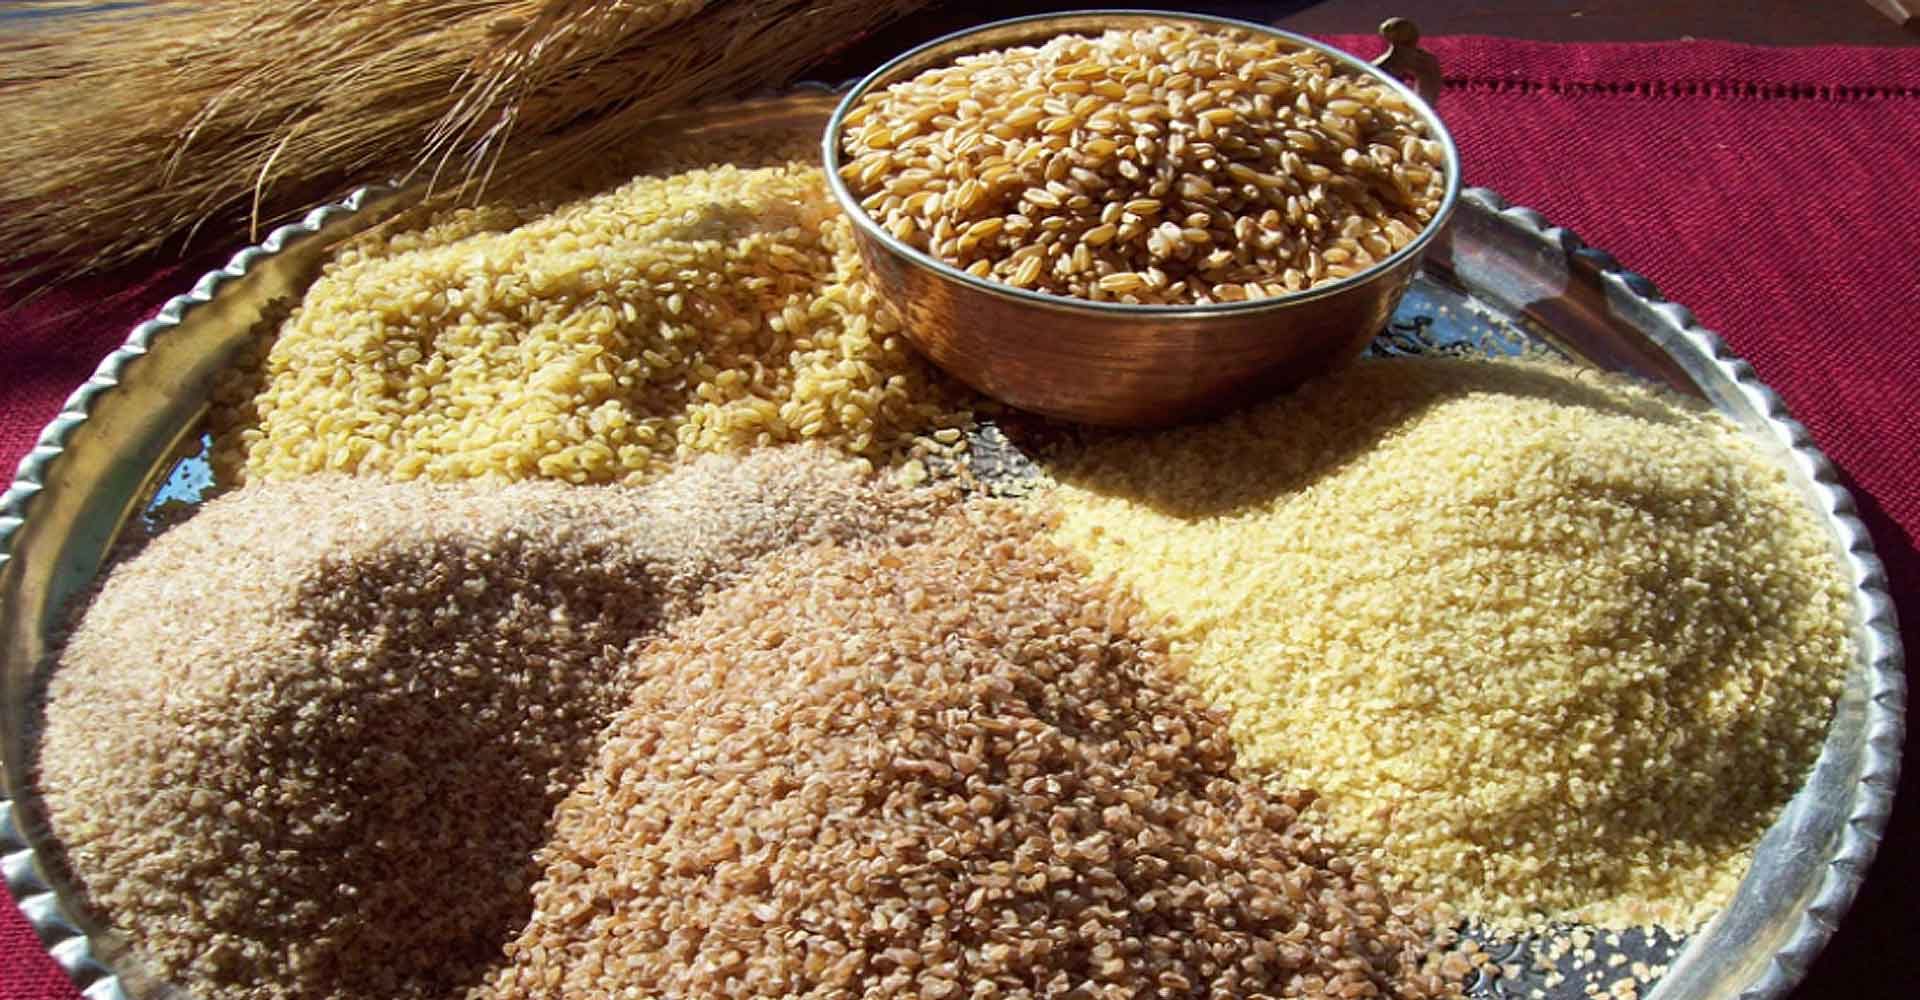 Hulled wheat and bulgur wheat production